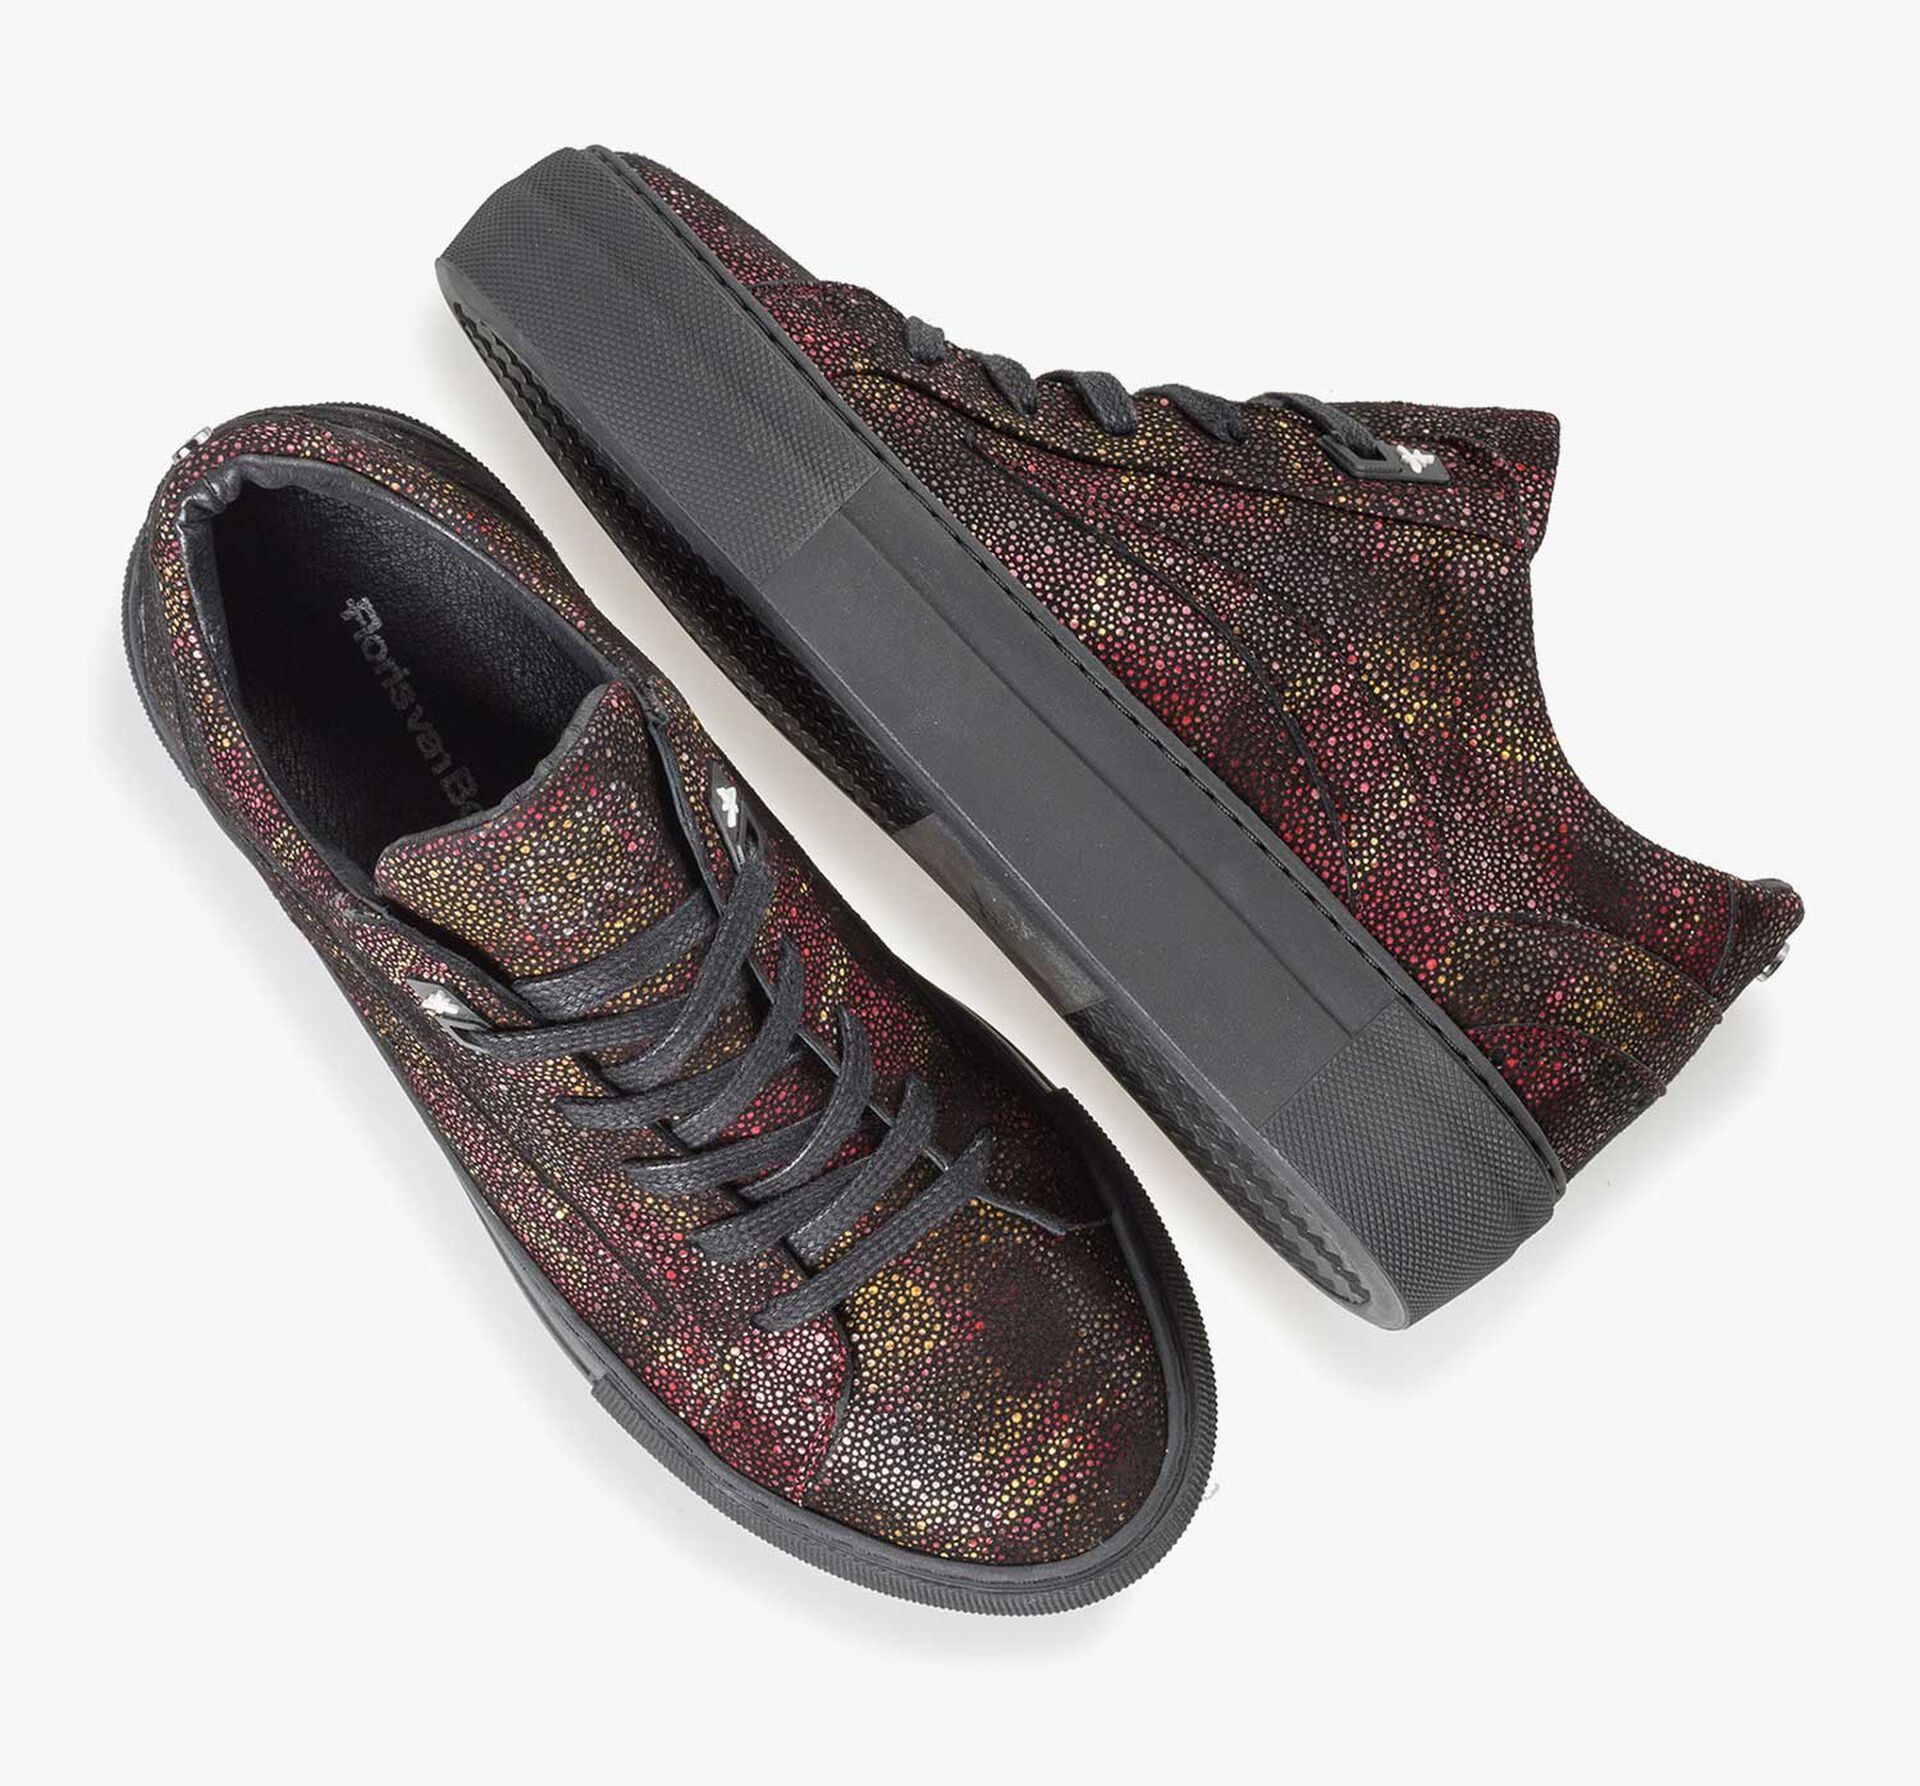 Leather sneaker with red check pattern